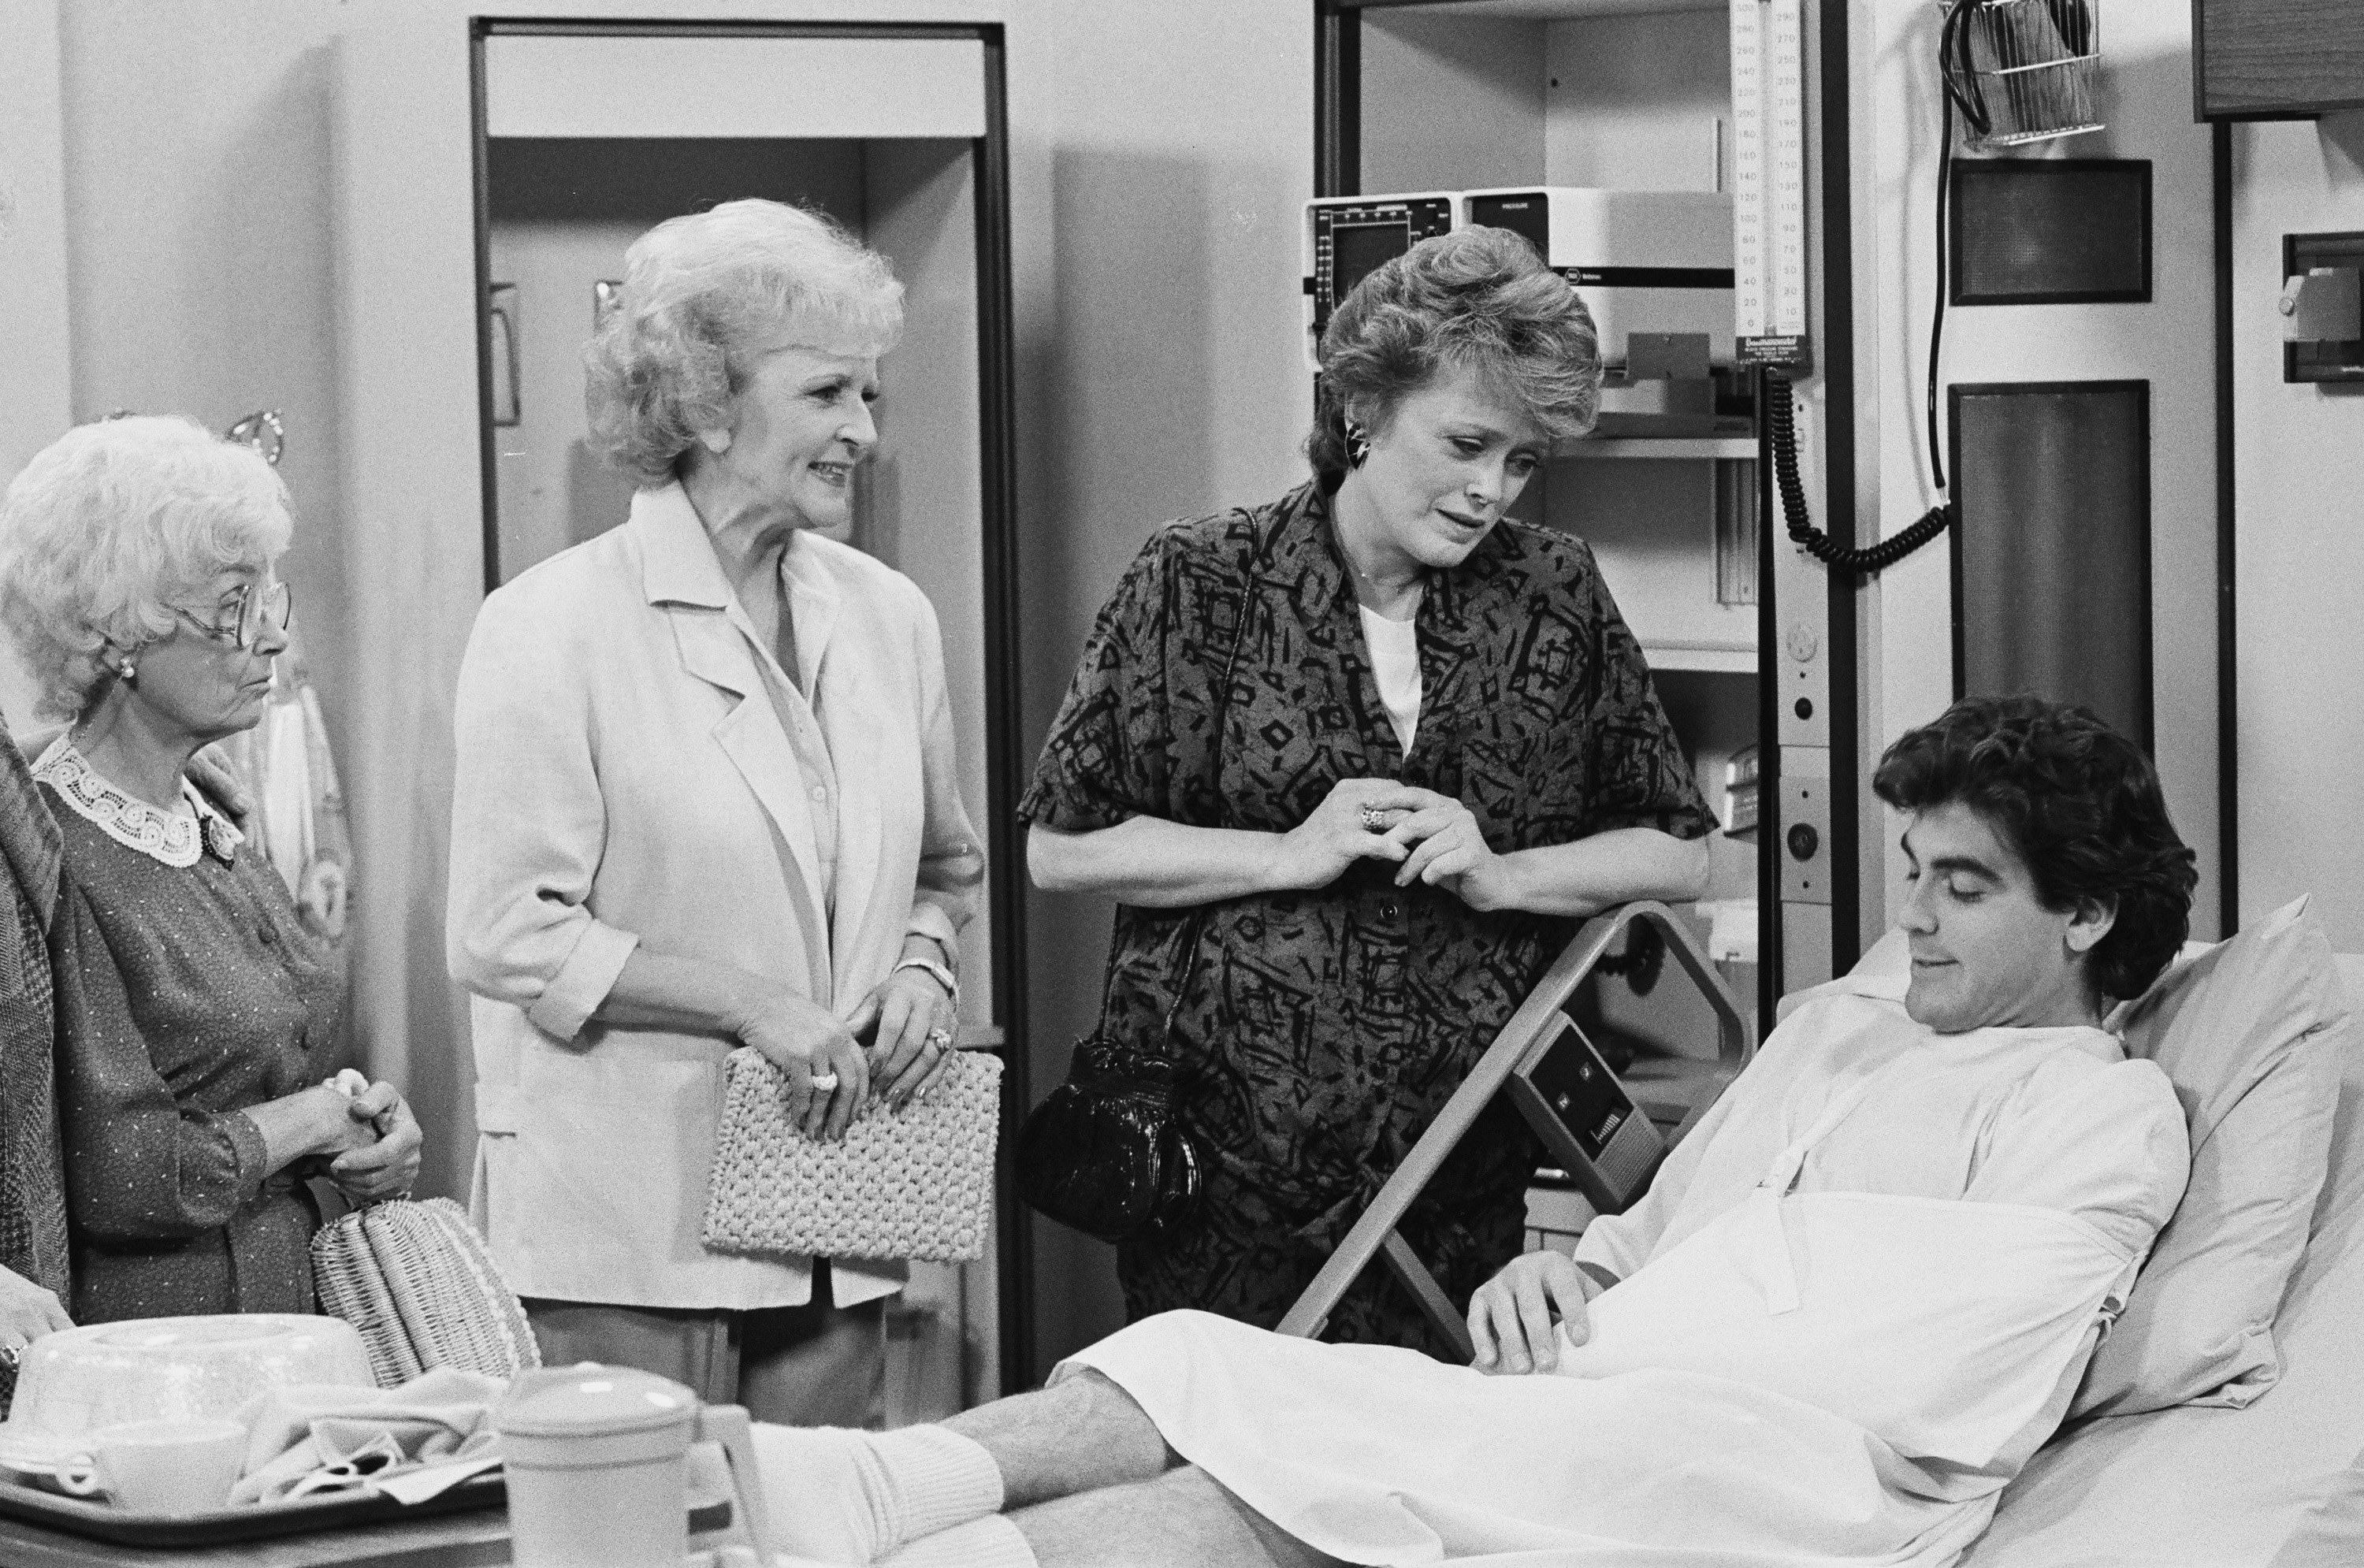 George Clooney laying in a hospital bed surround by Estelle Getty, Betty White, and Rue McClanahan